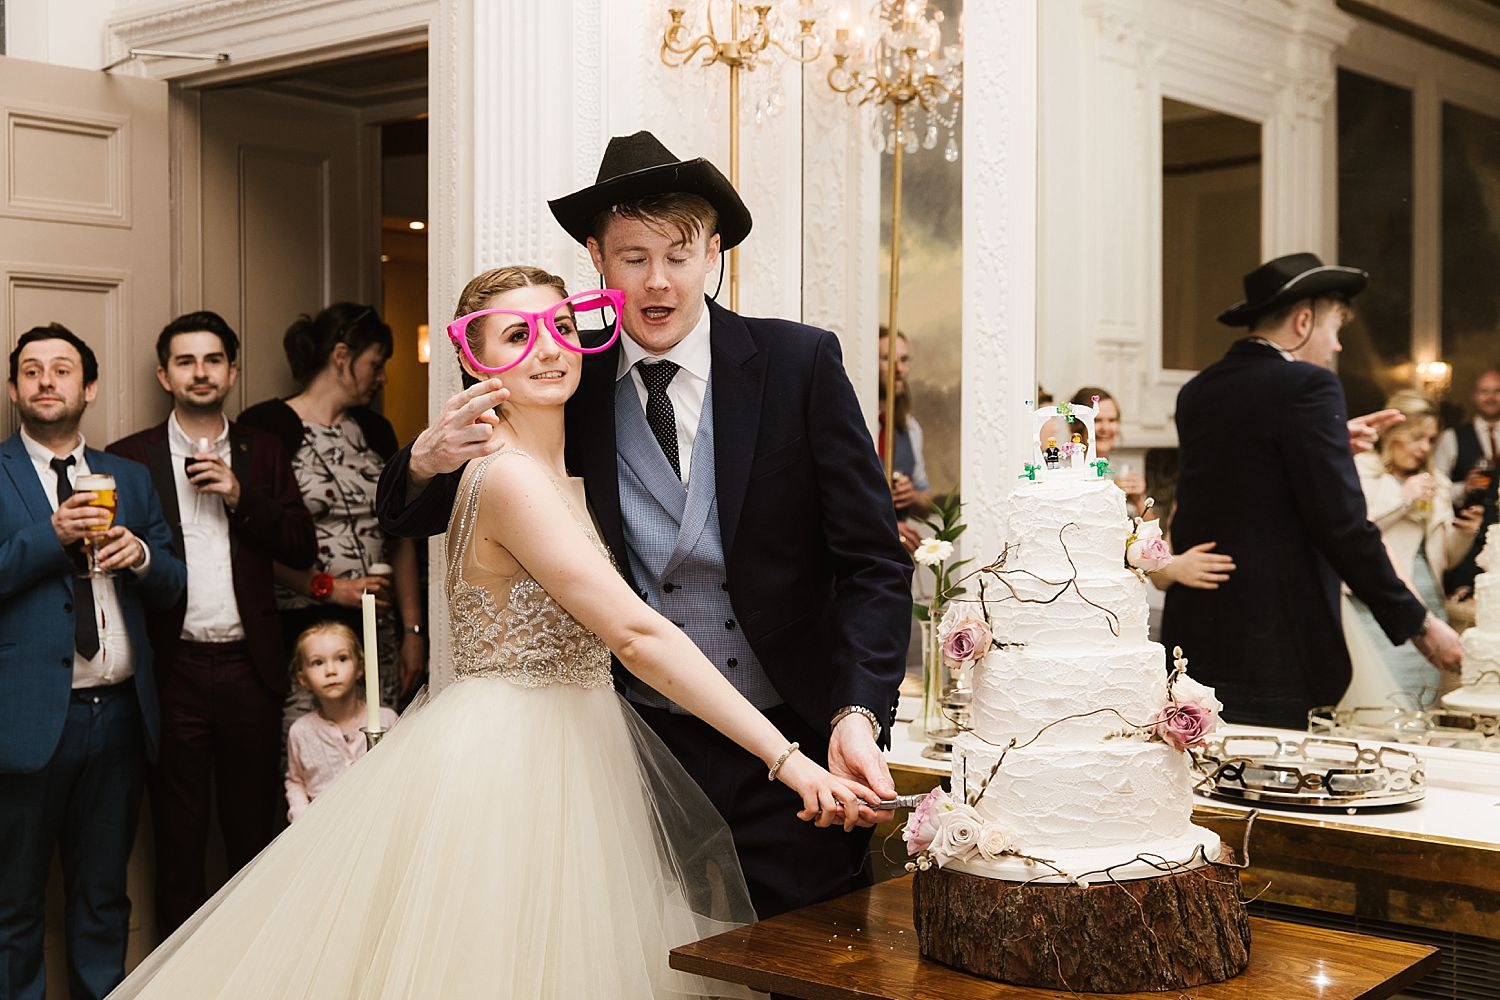 groom in cowboy hat and Bride in oversized pink glasses cut the wedding cake at their Lake District wedding